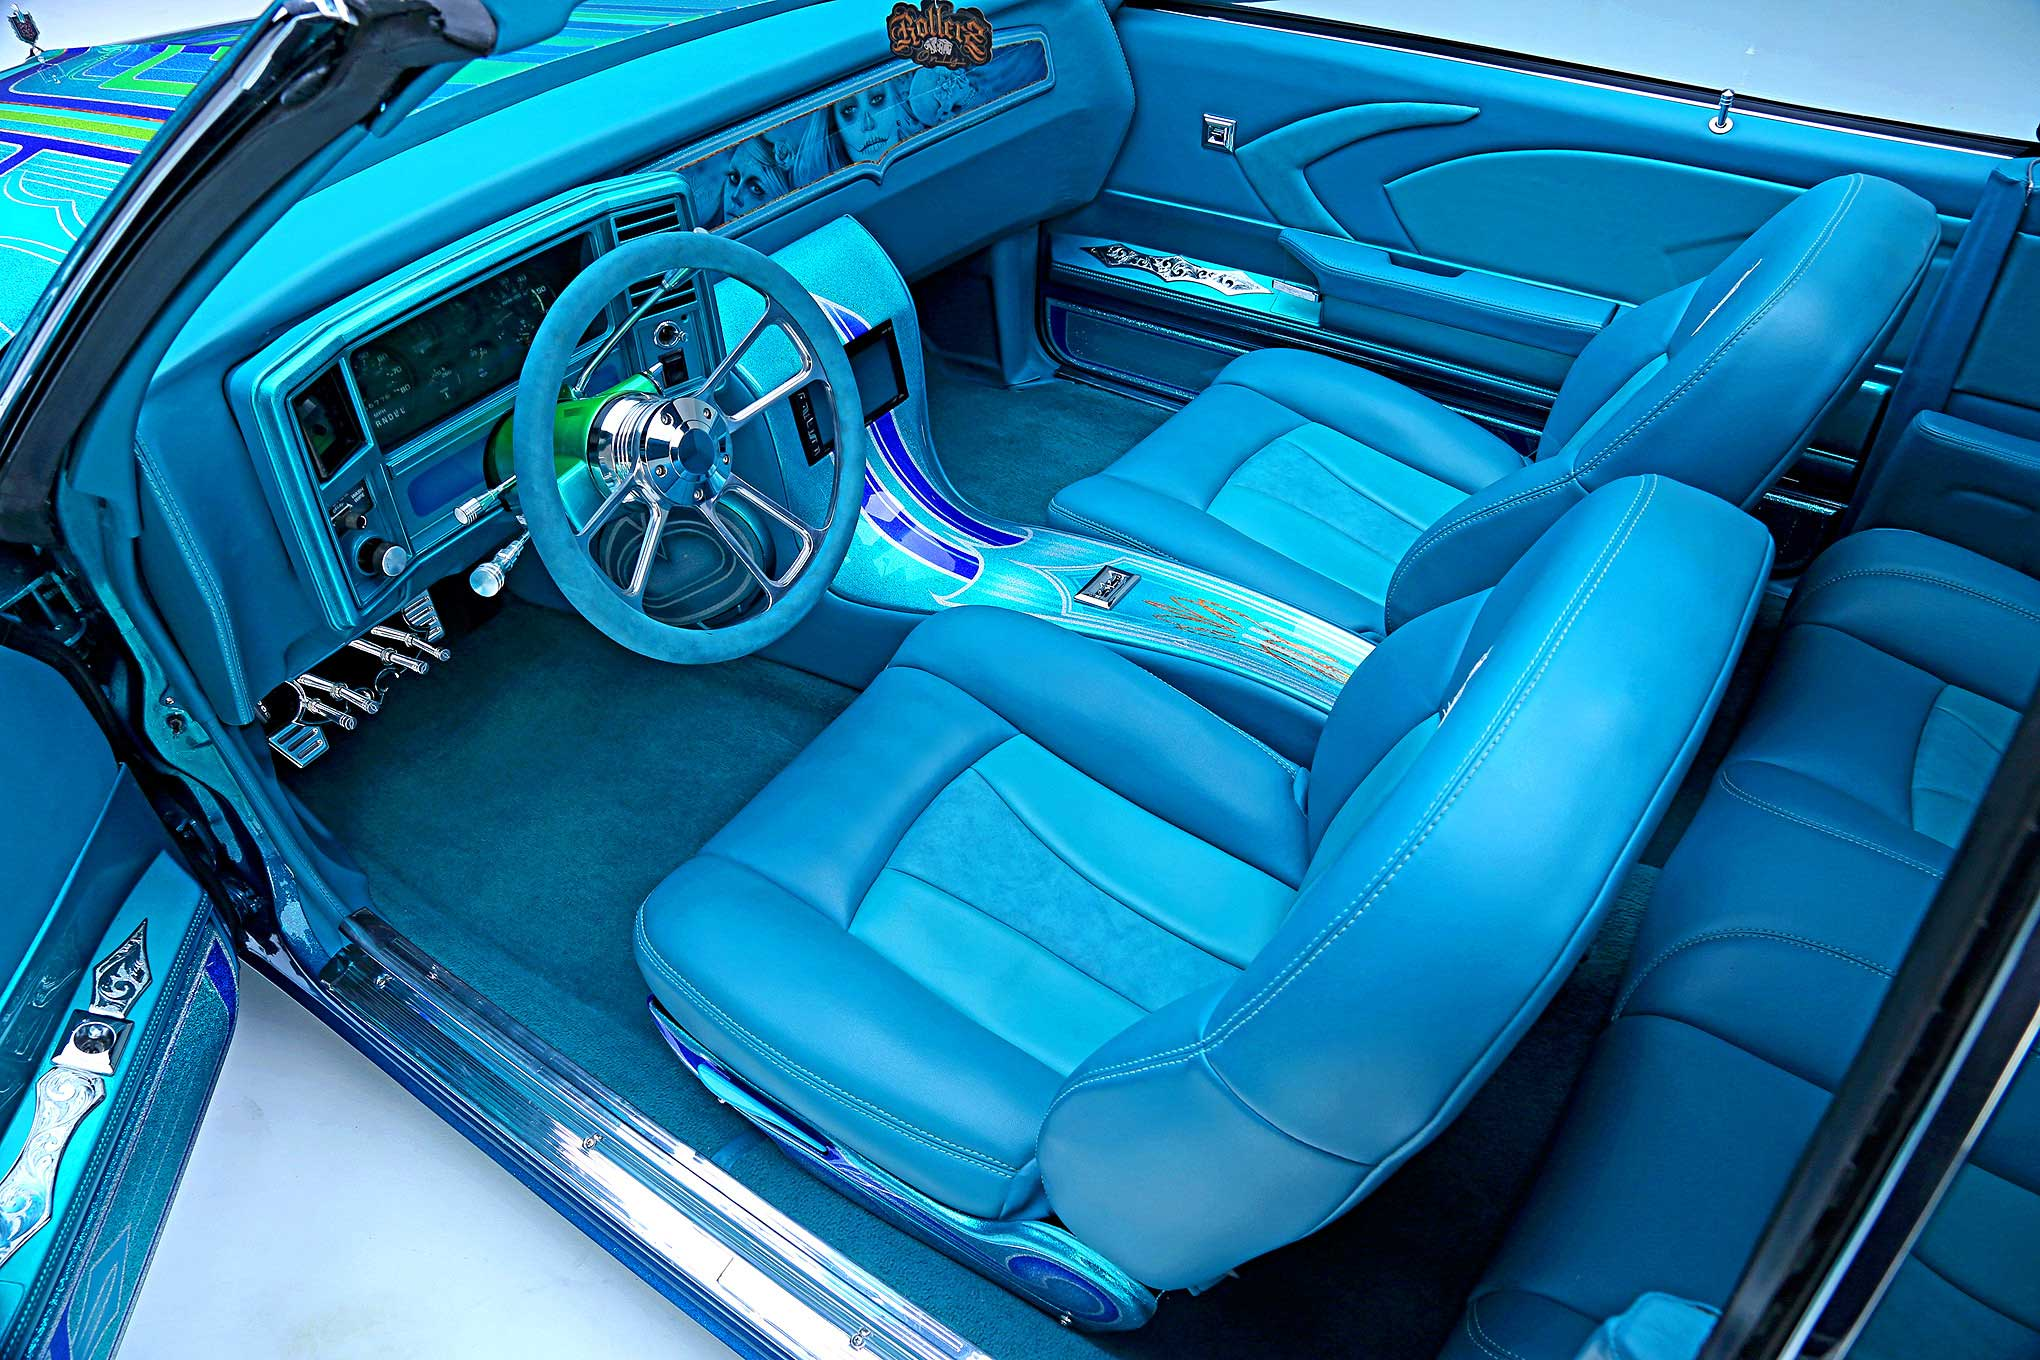 1979 Chevrolet Monte Carlo Teal Suede And Leather Interior Lowrider